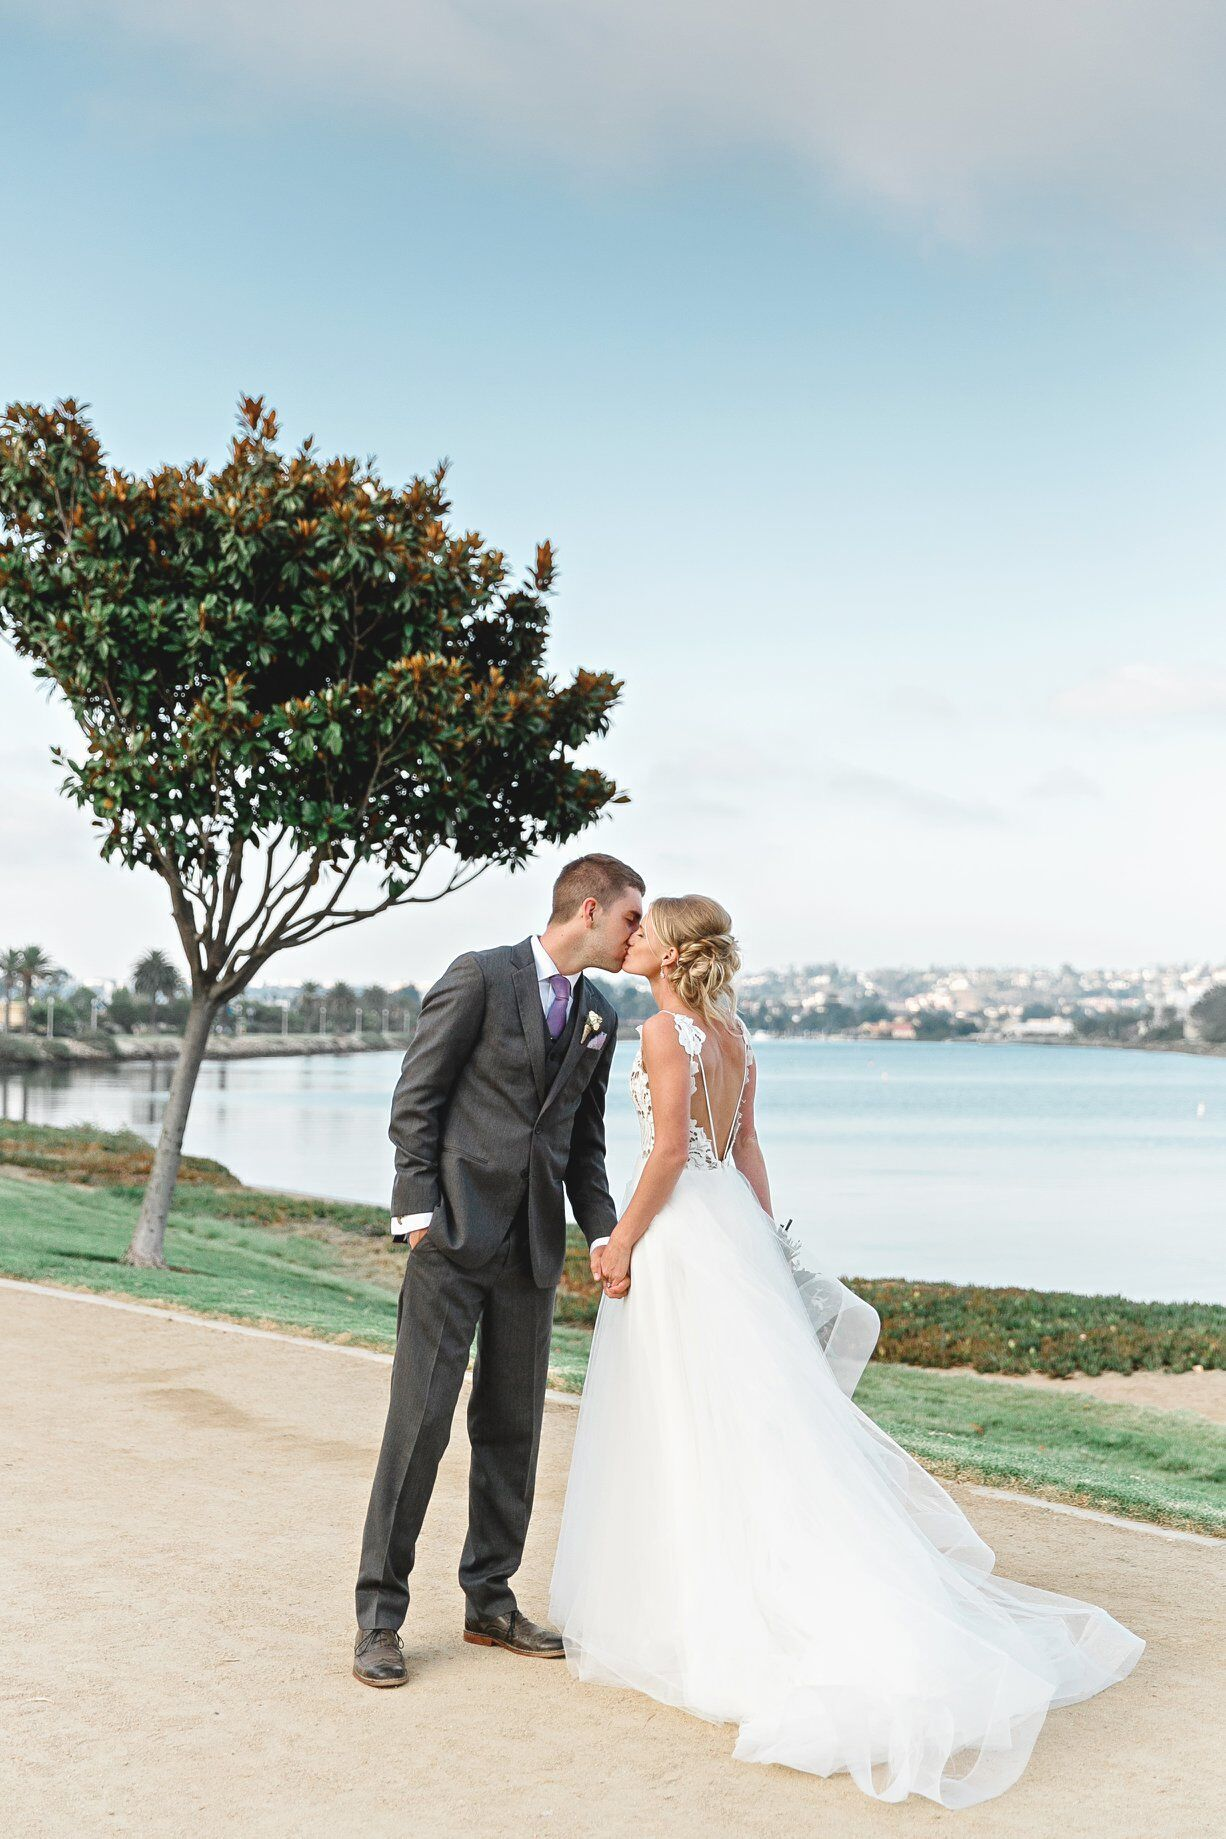 Helen And Tylor S Wedding At Brick San Diego Magnolia Wedding San Diego Wedding Indoor Wedding